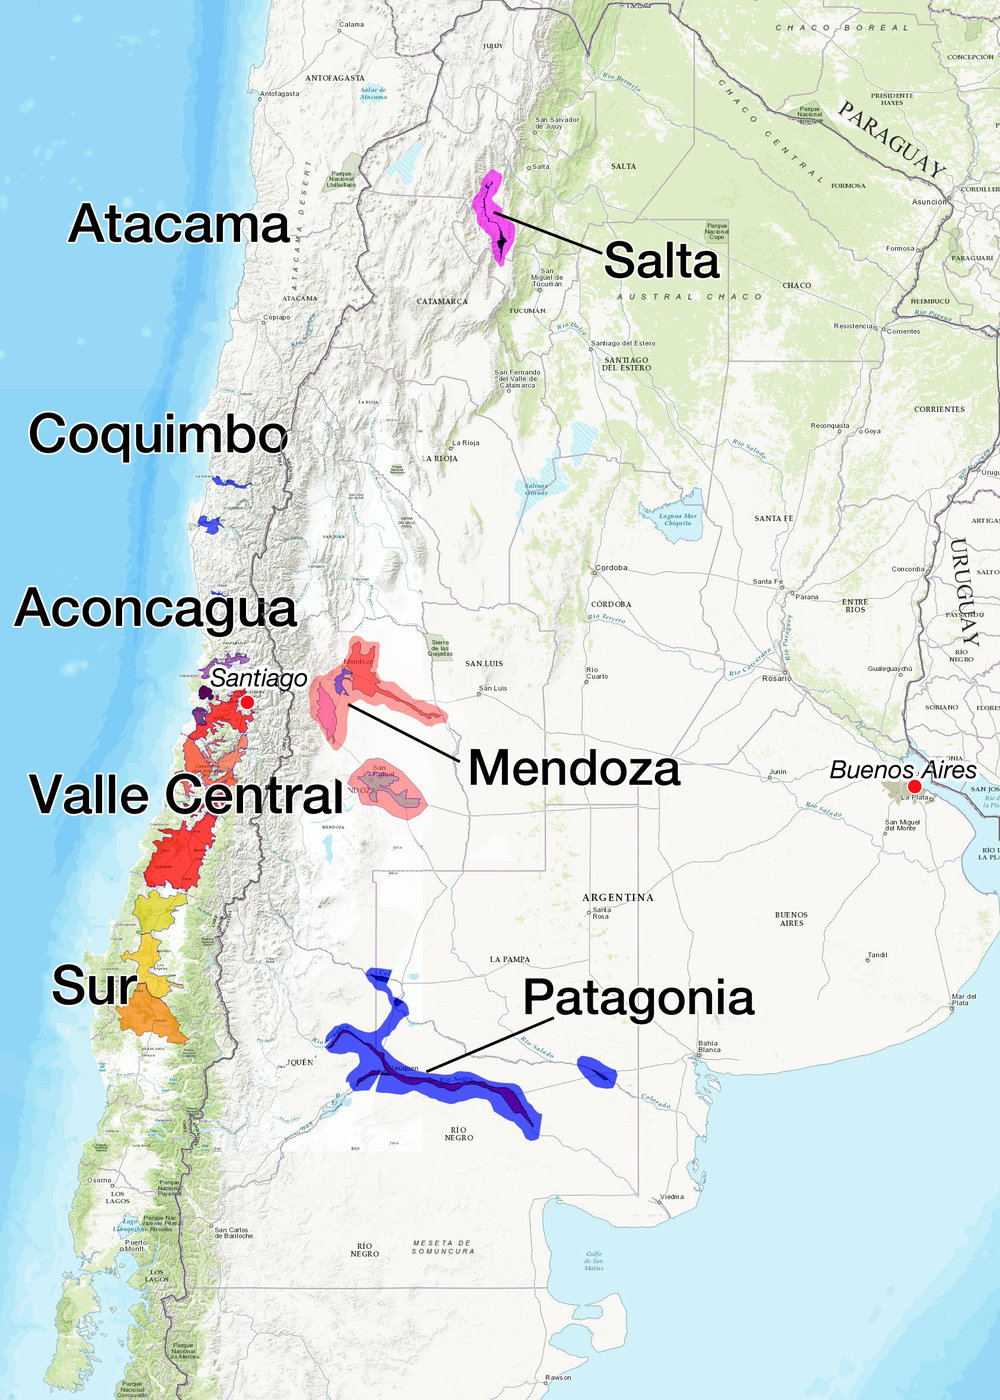 Argentina-Chile-Overview.jpg